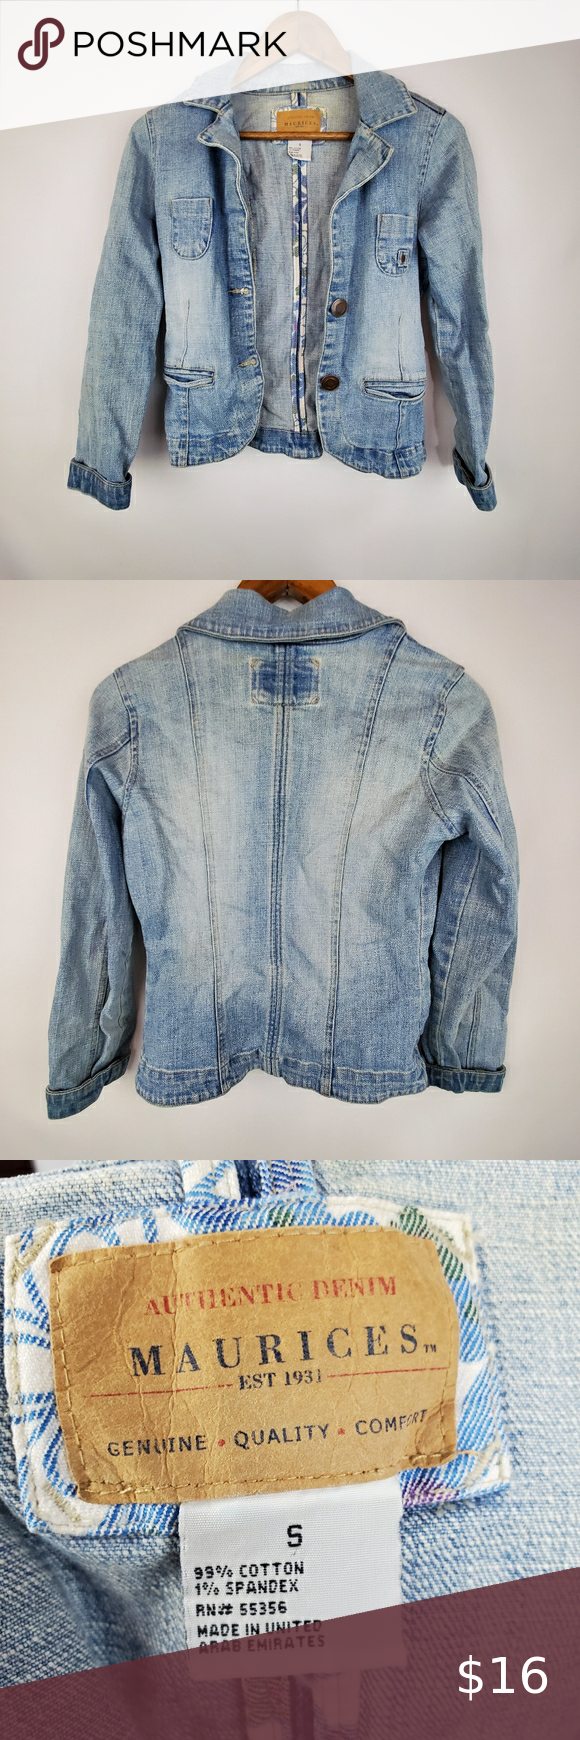 Maurices White Wash Jean Jacket Clothes Design Washed Jean Jacket Fashion [ 1740 x 580 Pixel ]